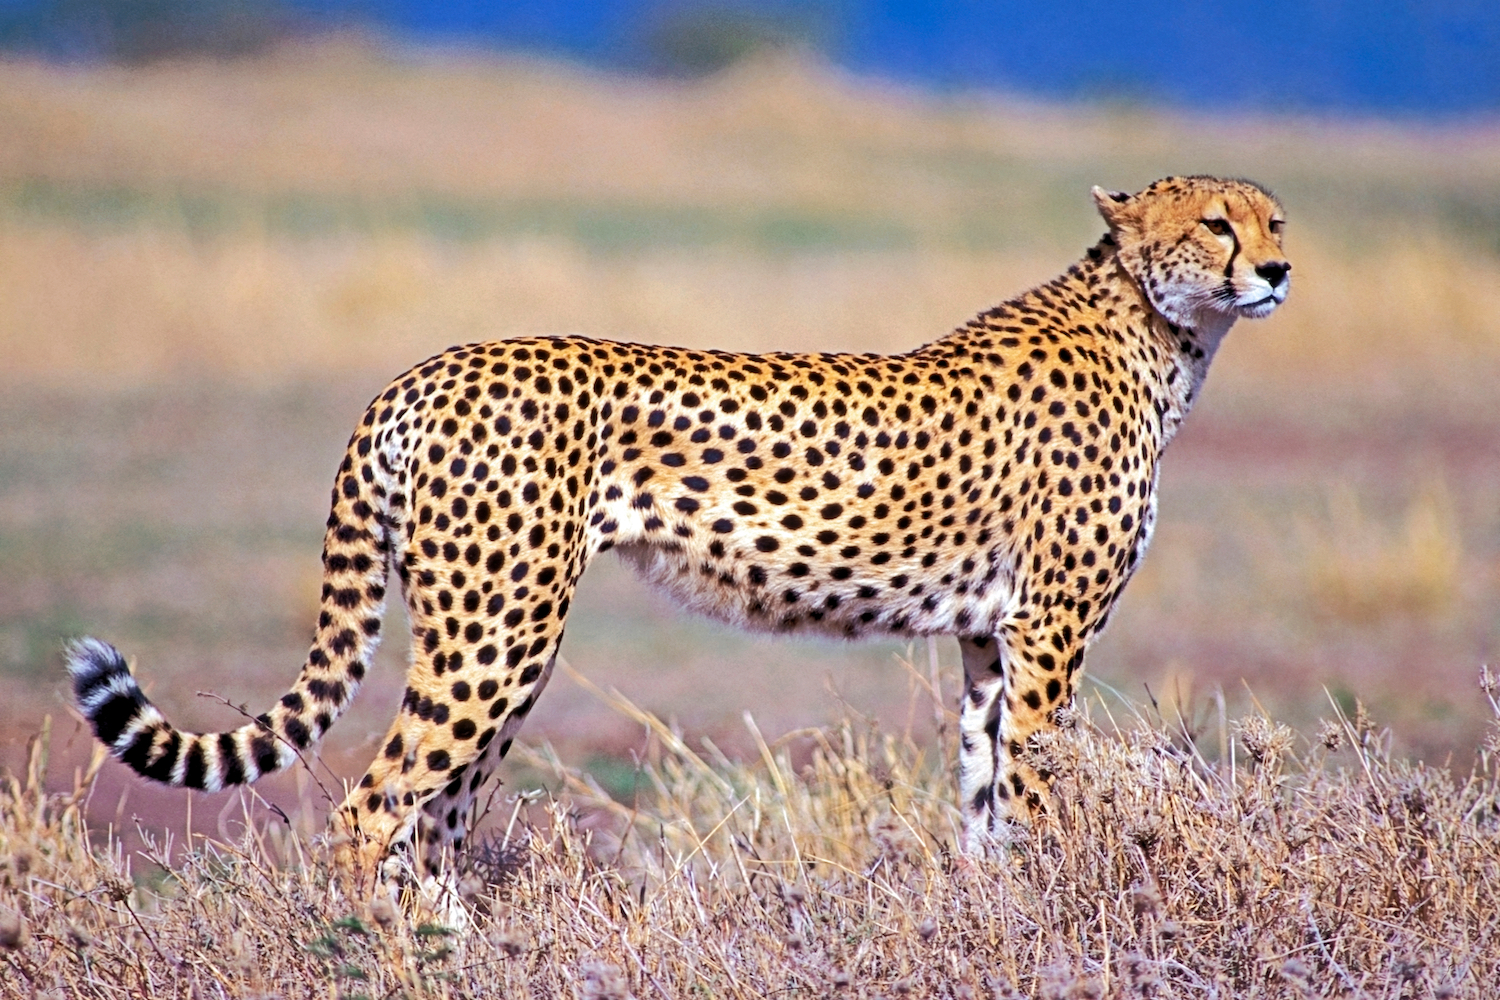 Cheetahs: The Fastest Land Animals | Live Science